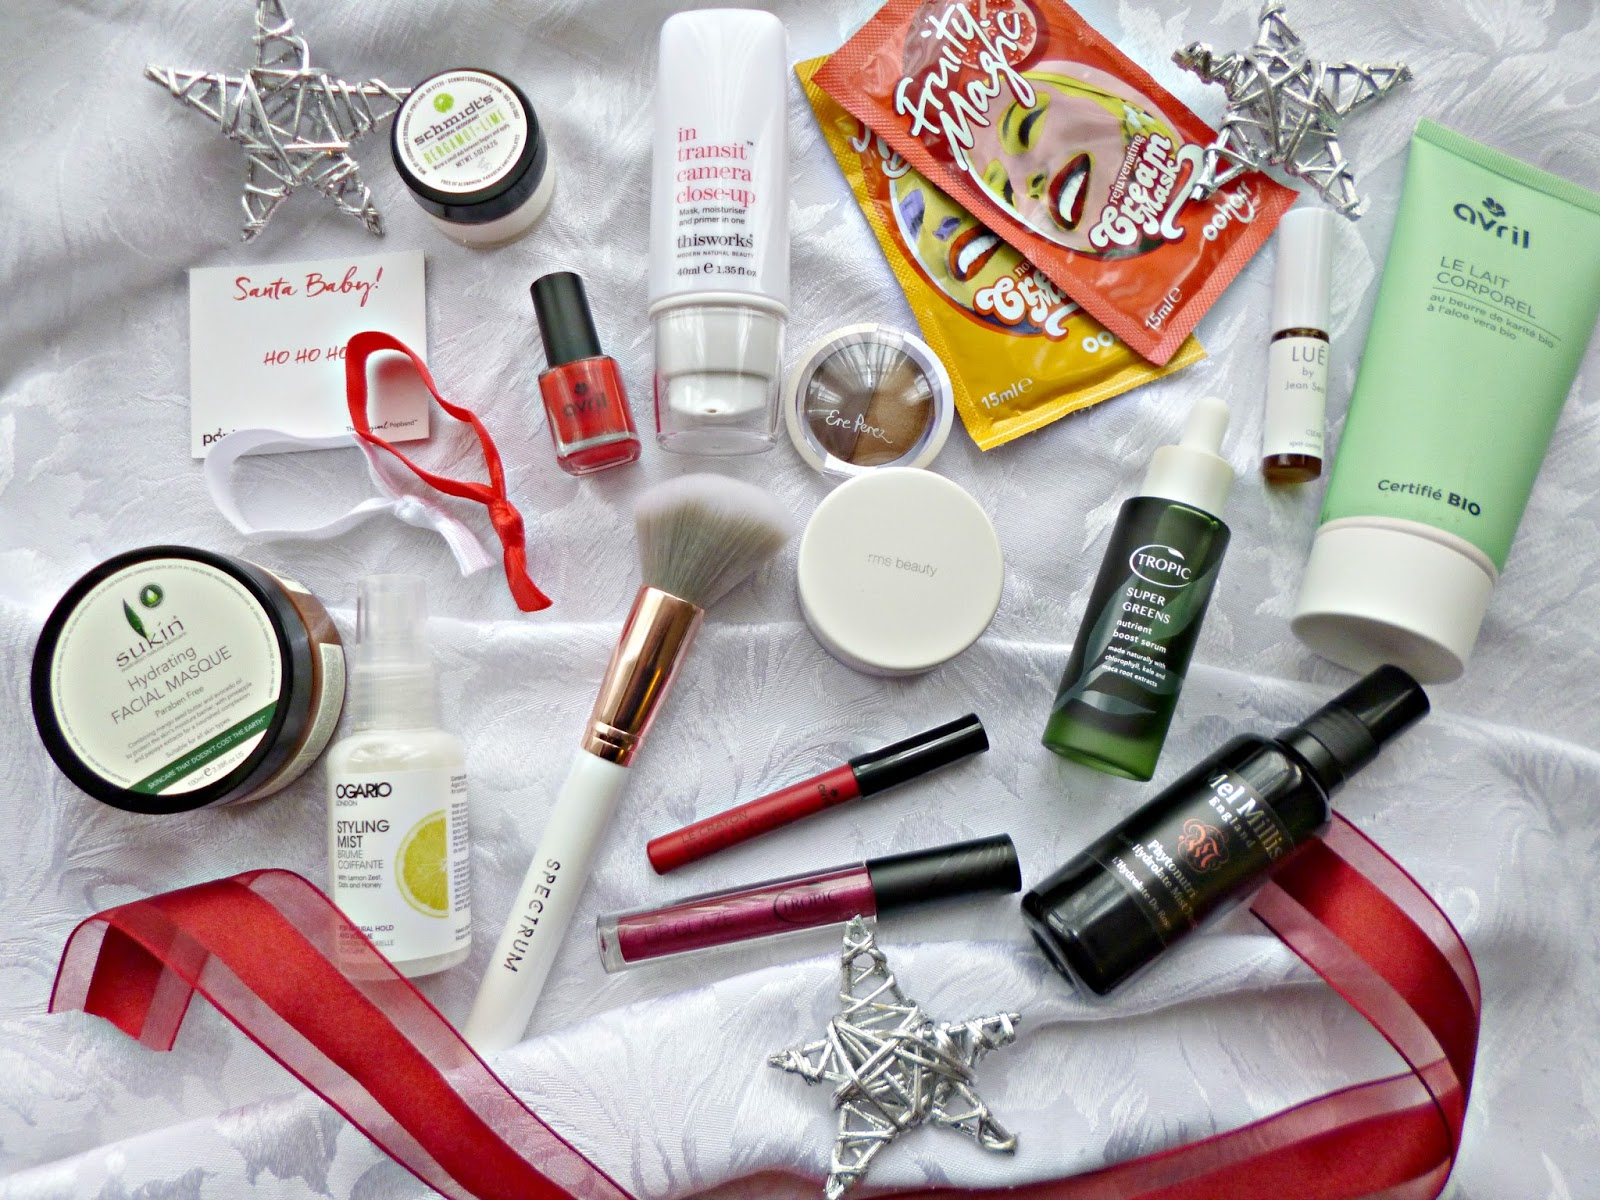 Party prep beauty – Skincare, body care and makeup